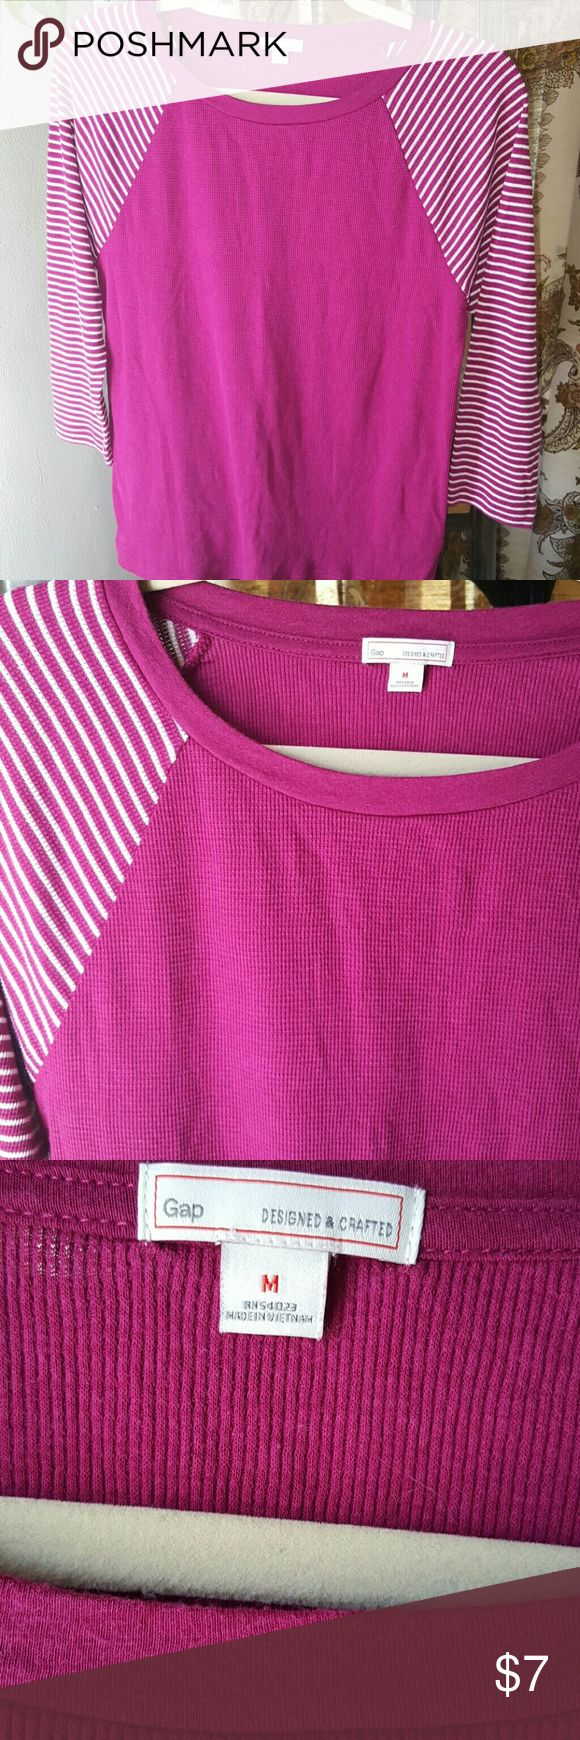 Gap striped waffle top. Vibrant fuchsia top with white stripes.  Very light and comfy. GAP Tops